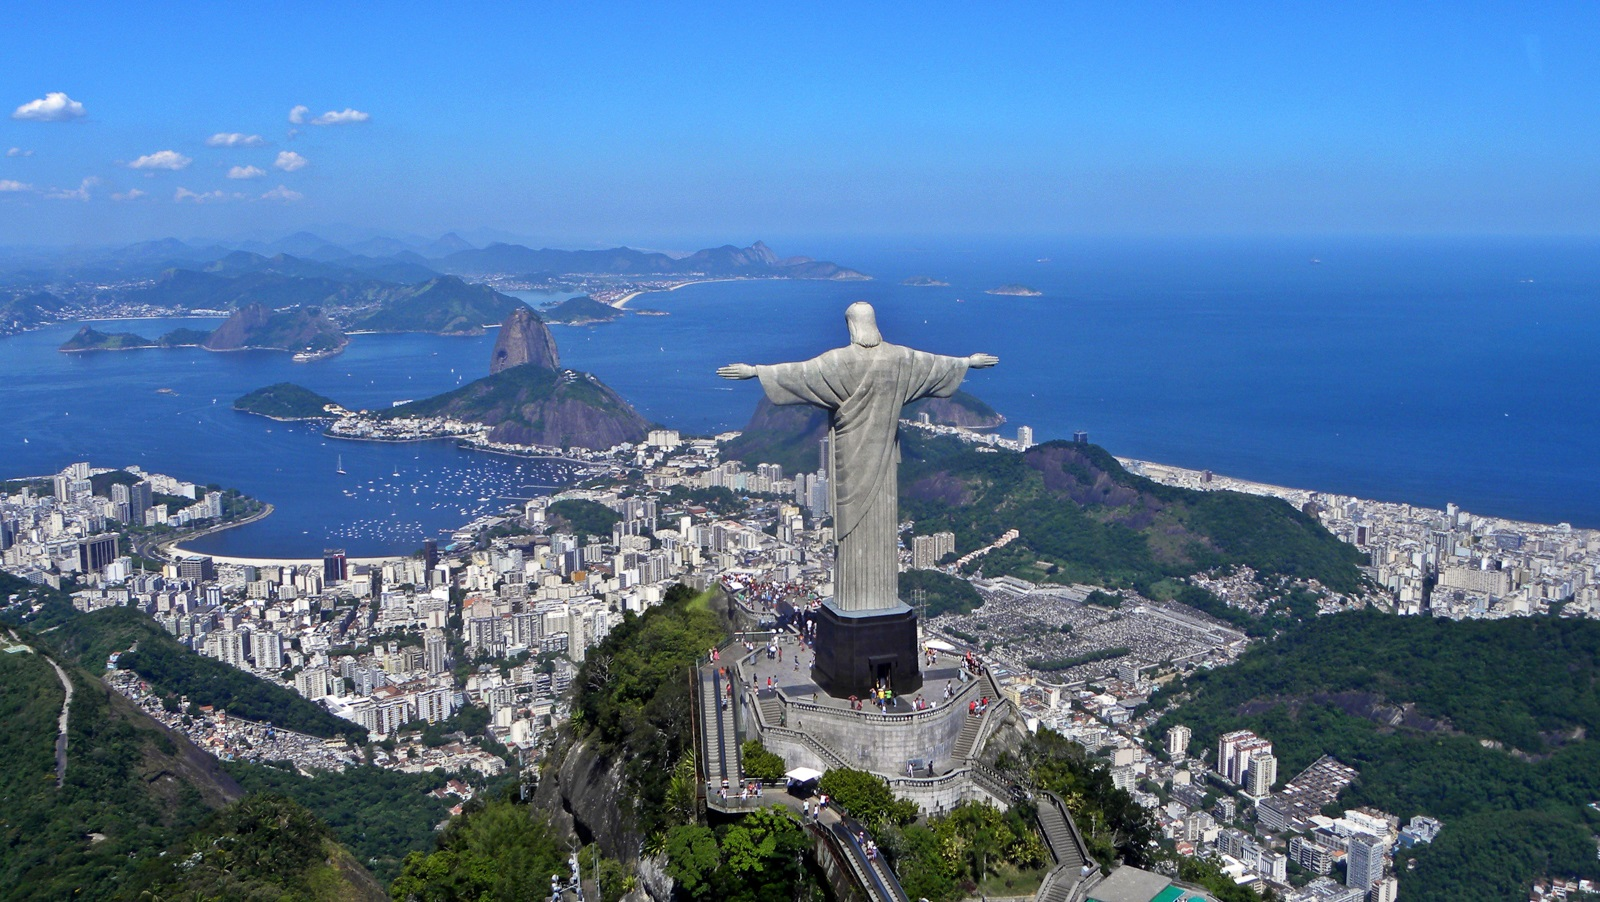 10_Romain_Gauthier_Logical_one_Secret_Kakau_Hofke_MON000168_Rio_Christ_the-Redeemer_on-Corcovado_by_Artyominc_2010_low_resolution